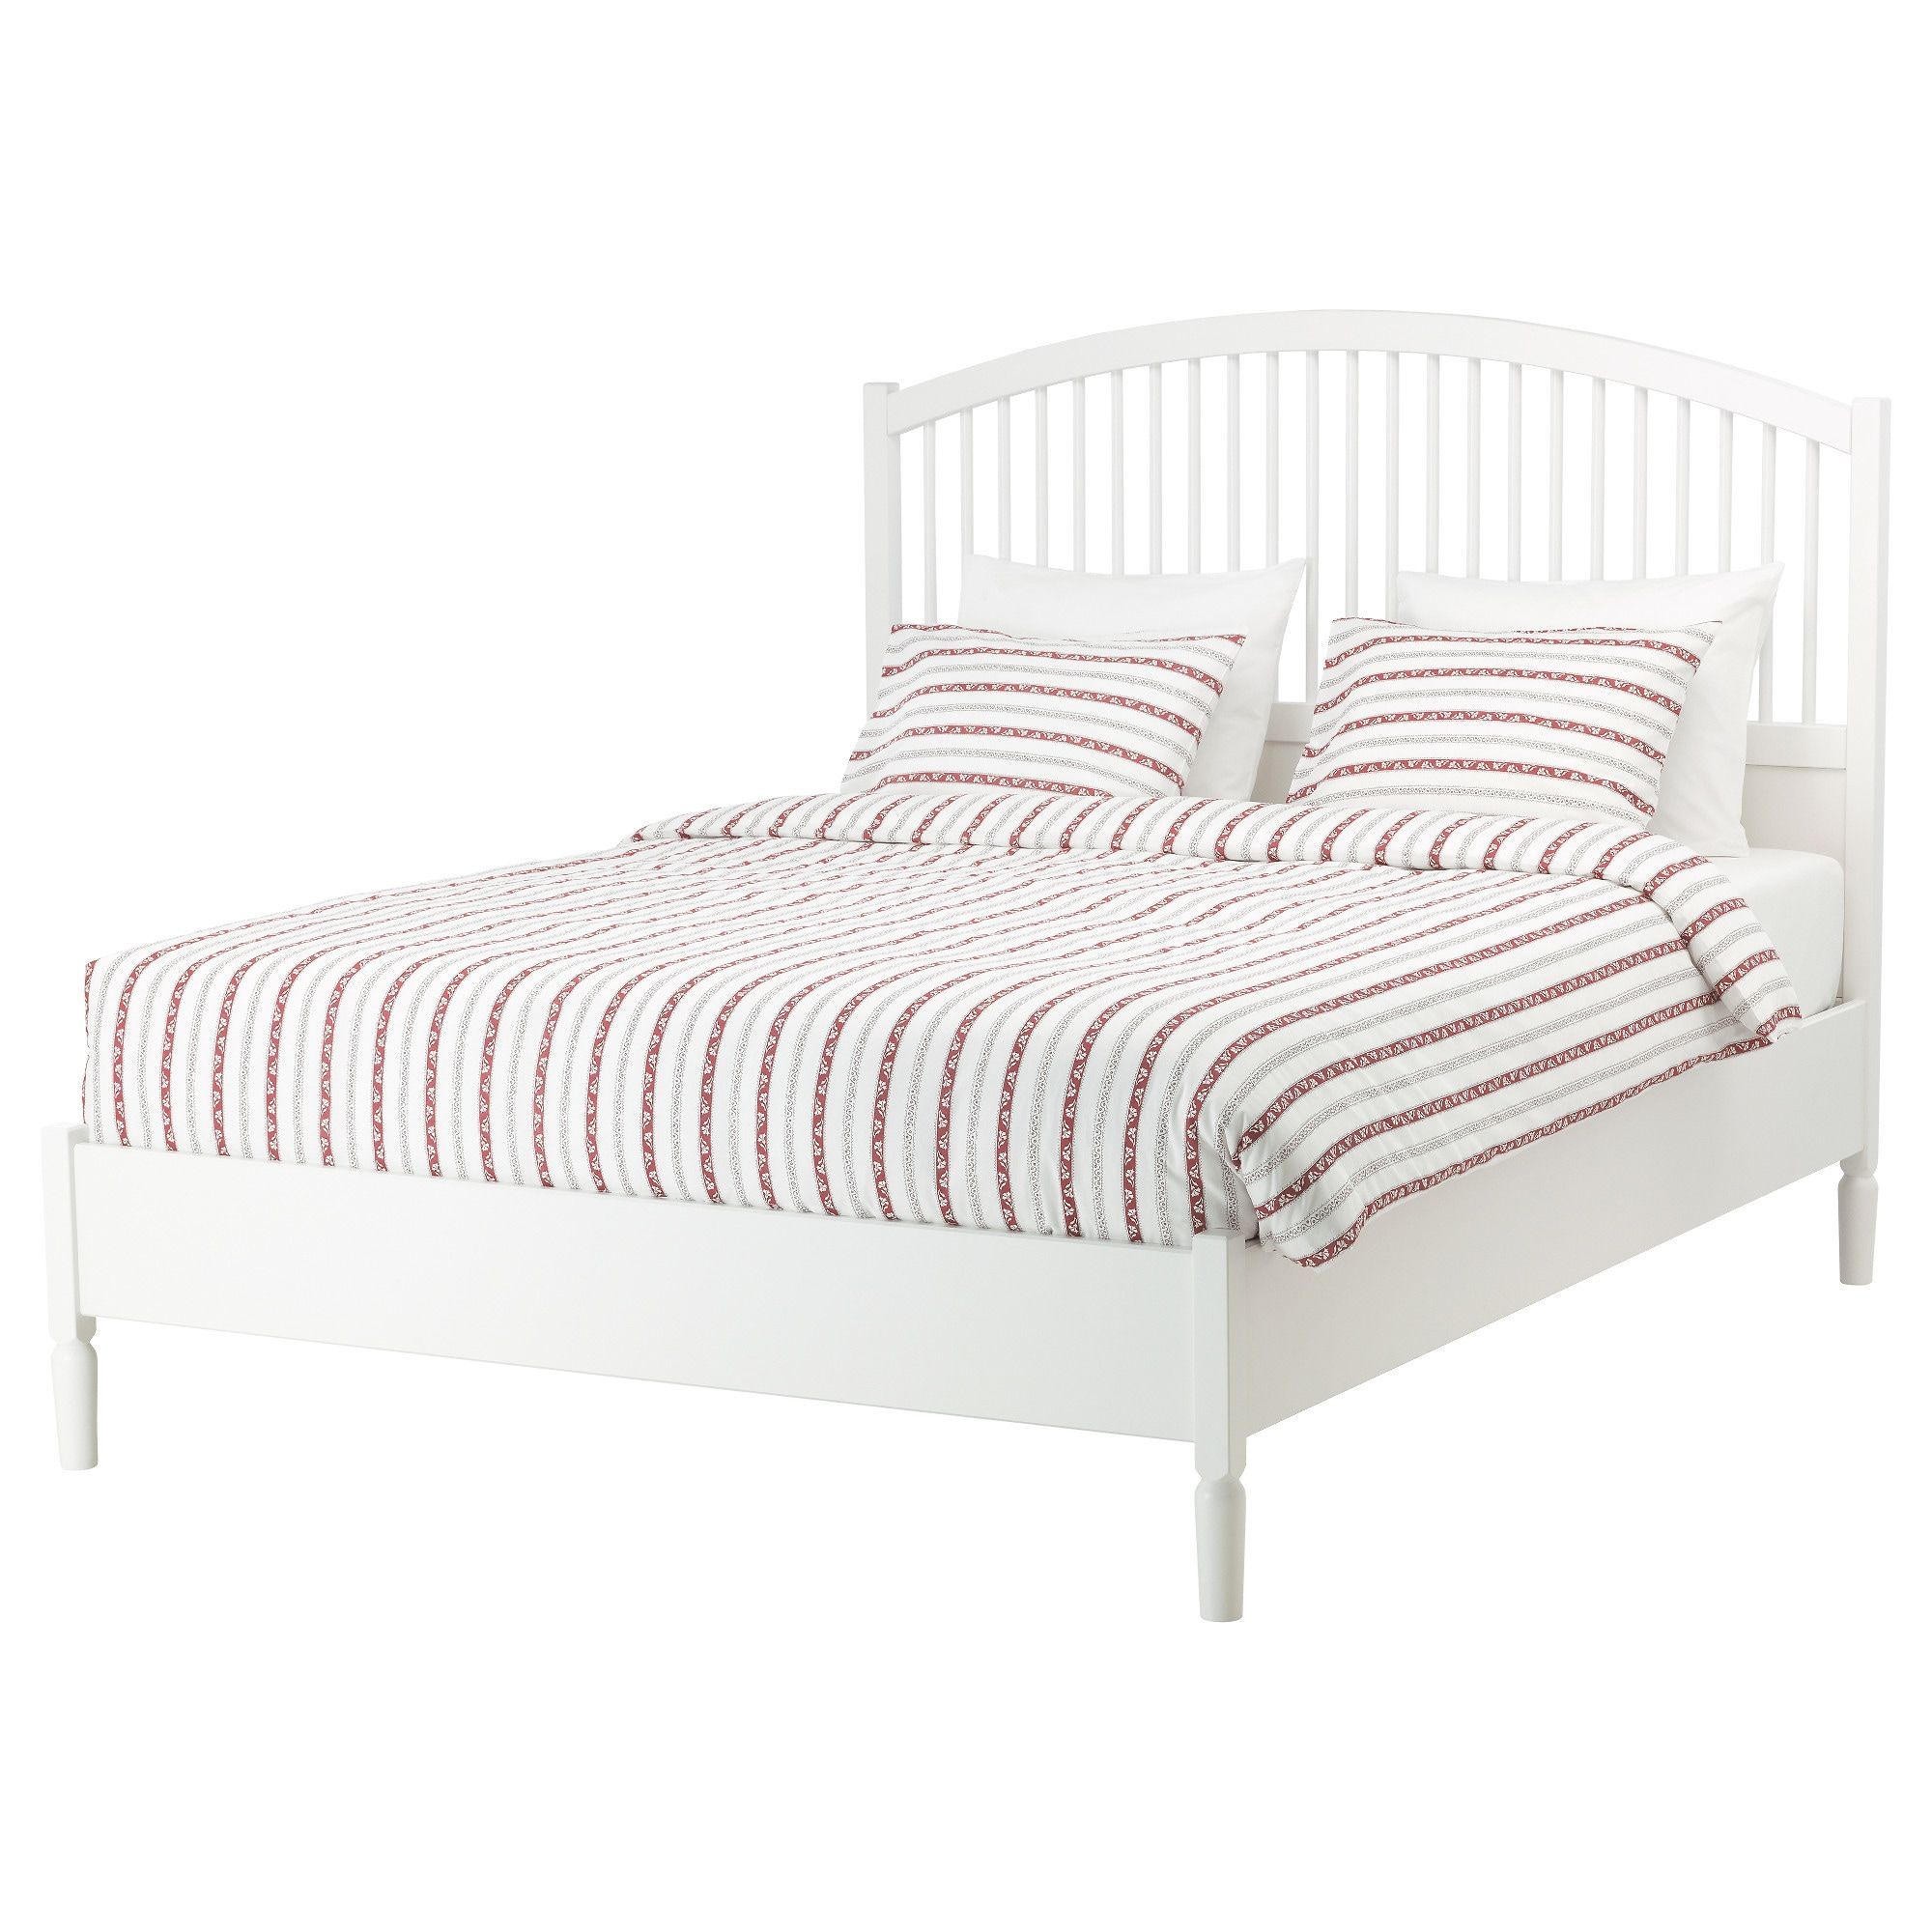 Tyssedal Bed Frame Queen Luroy Slatted Bed Base Ikea Ikea Bed Ikea Bed Frames Buy Bed Frame